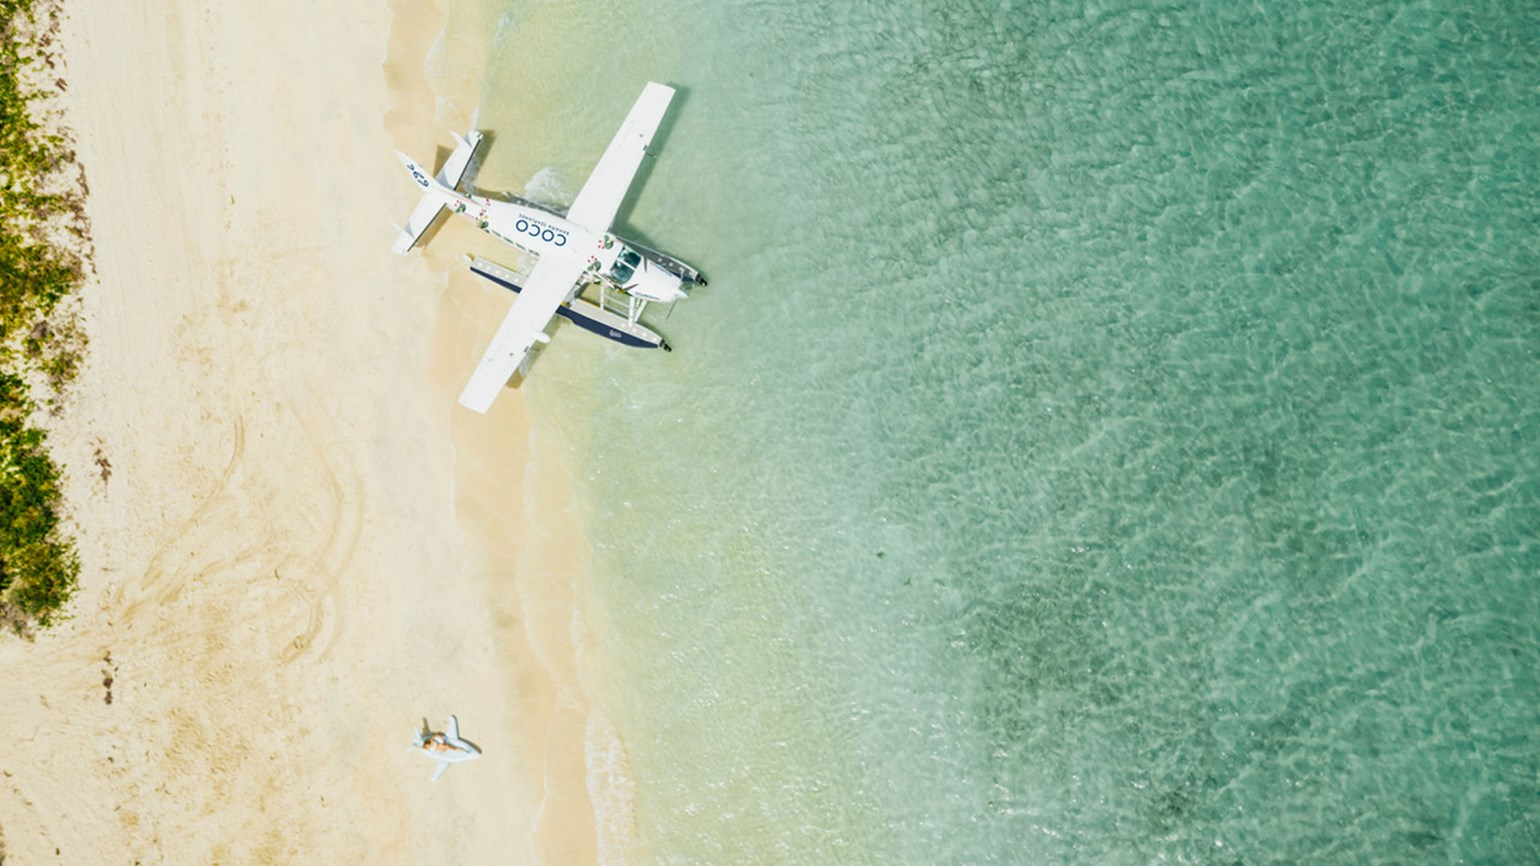 New seaplane operation takes flight in the Bahamas